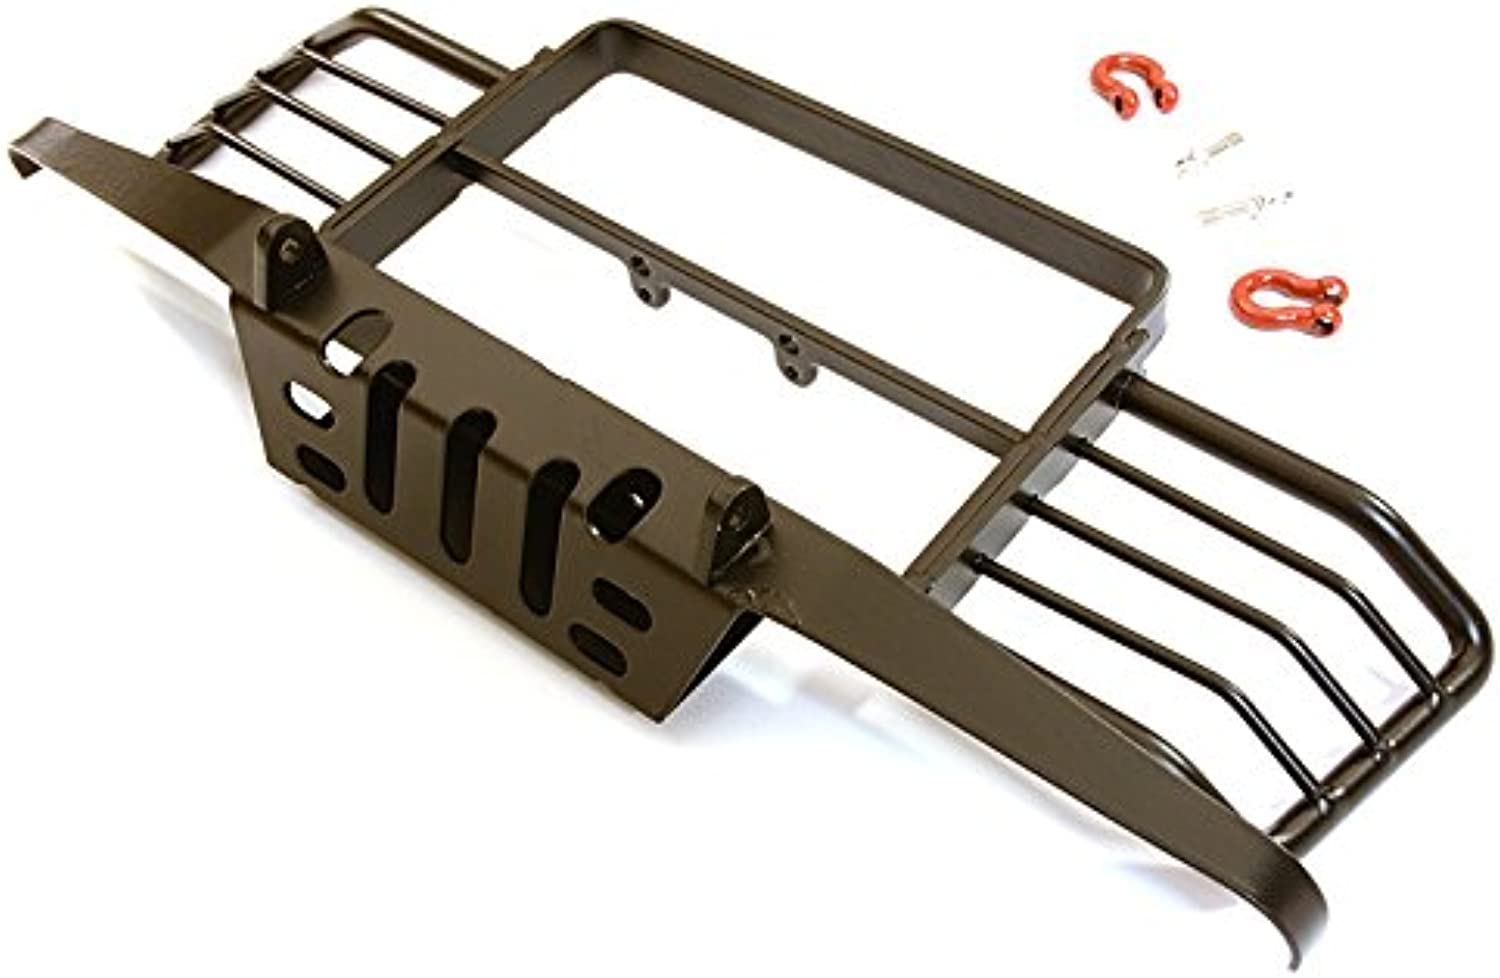 Integy RC Model Hop-ups C27223 Realistic Front Bumper for 1 10 Scale D90 & D110 Gen-2 Crawler